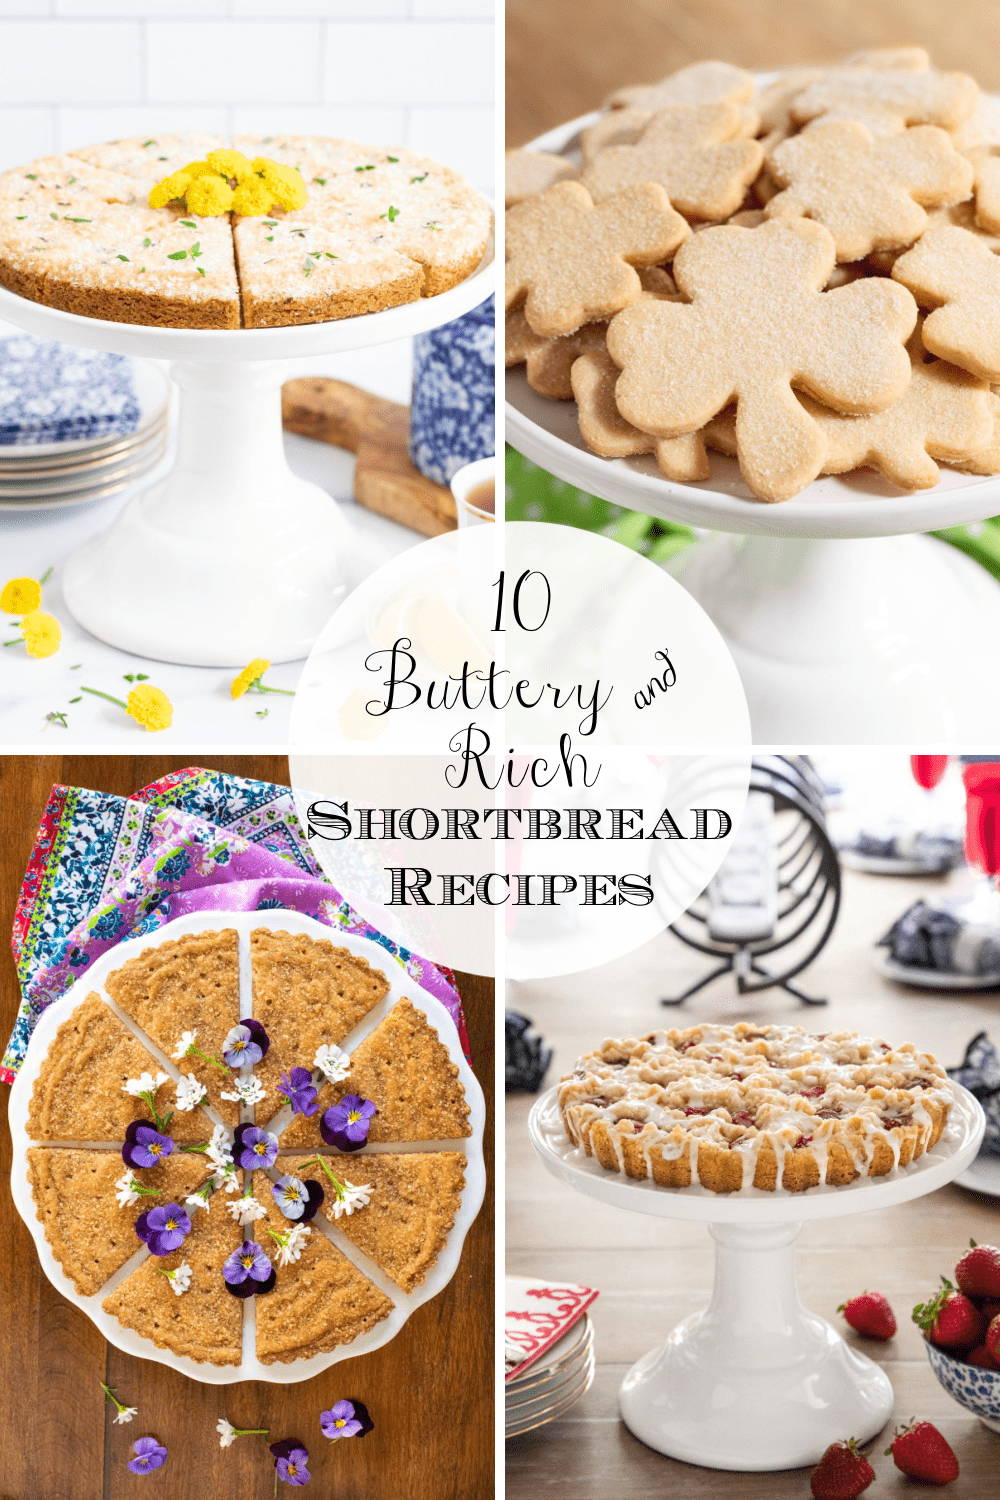 Calling All Shortbread Lovers!